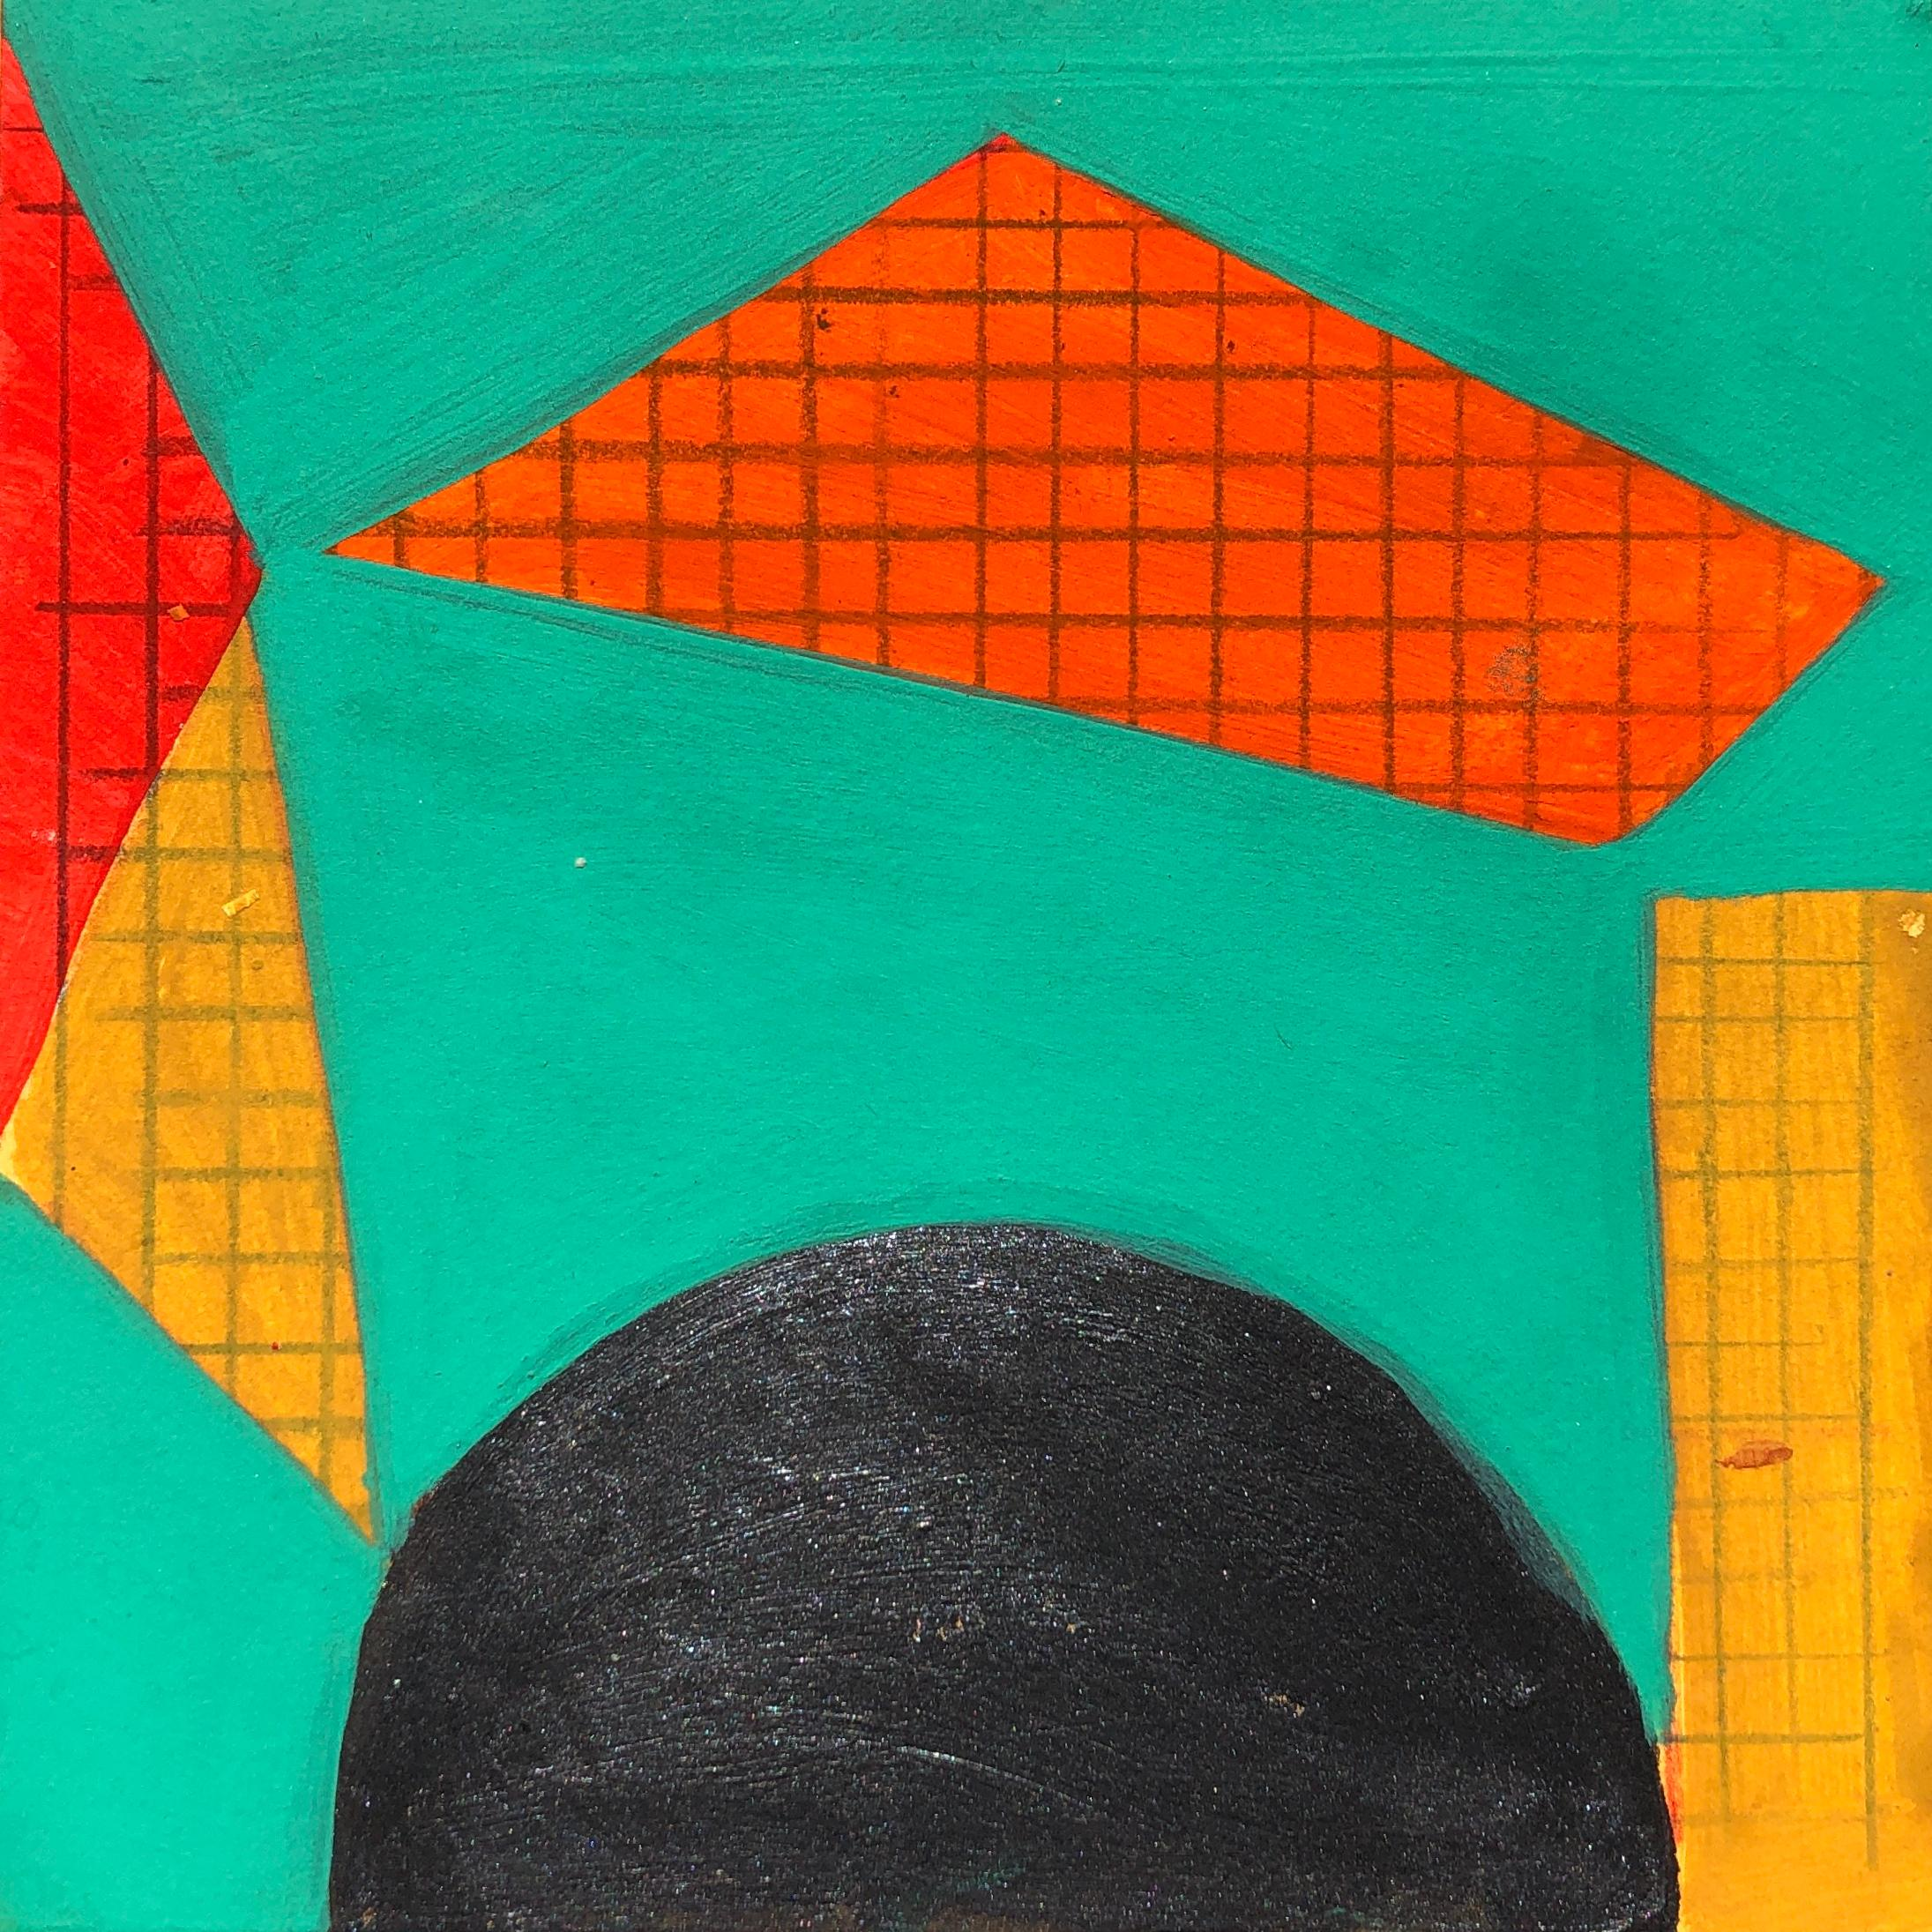 S1, abstract geometric pattern, mixed media on paper, green, yellow and red